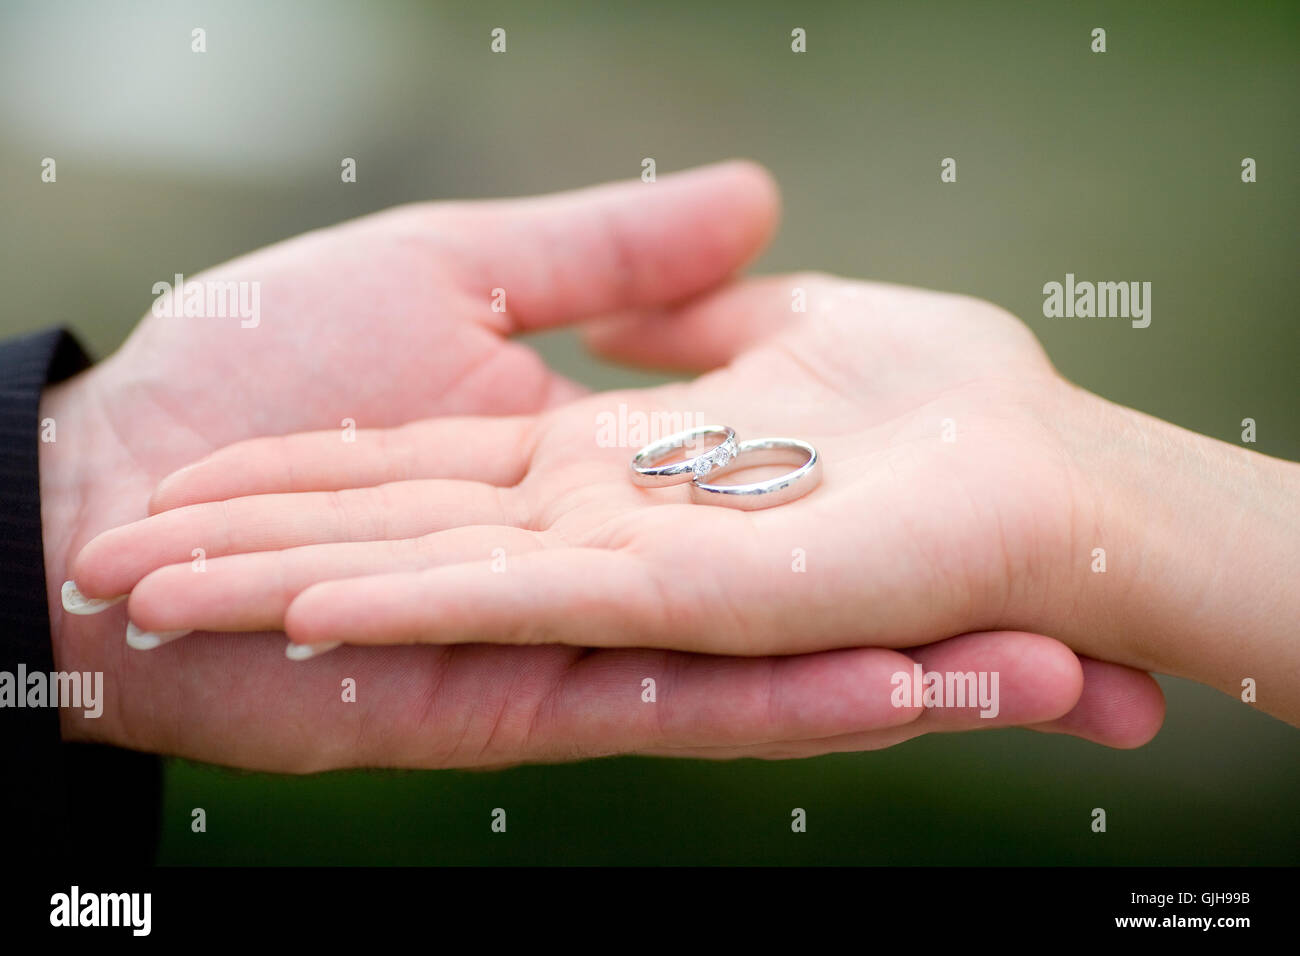 Showing Wedding Rings Ceremony Stock Photos & Showing Wedding Rings ...